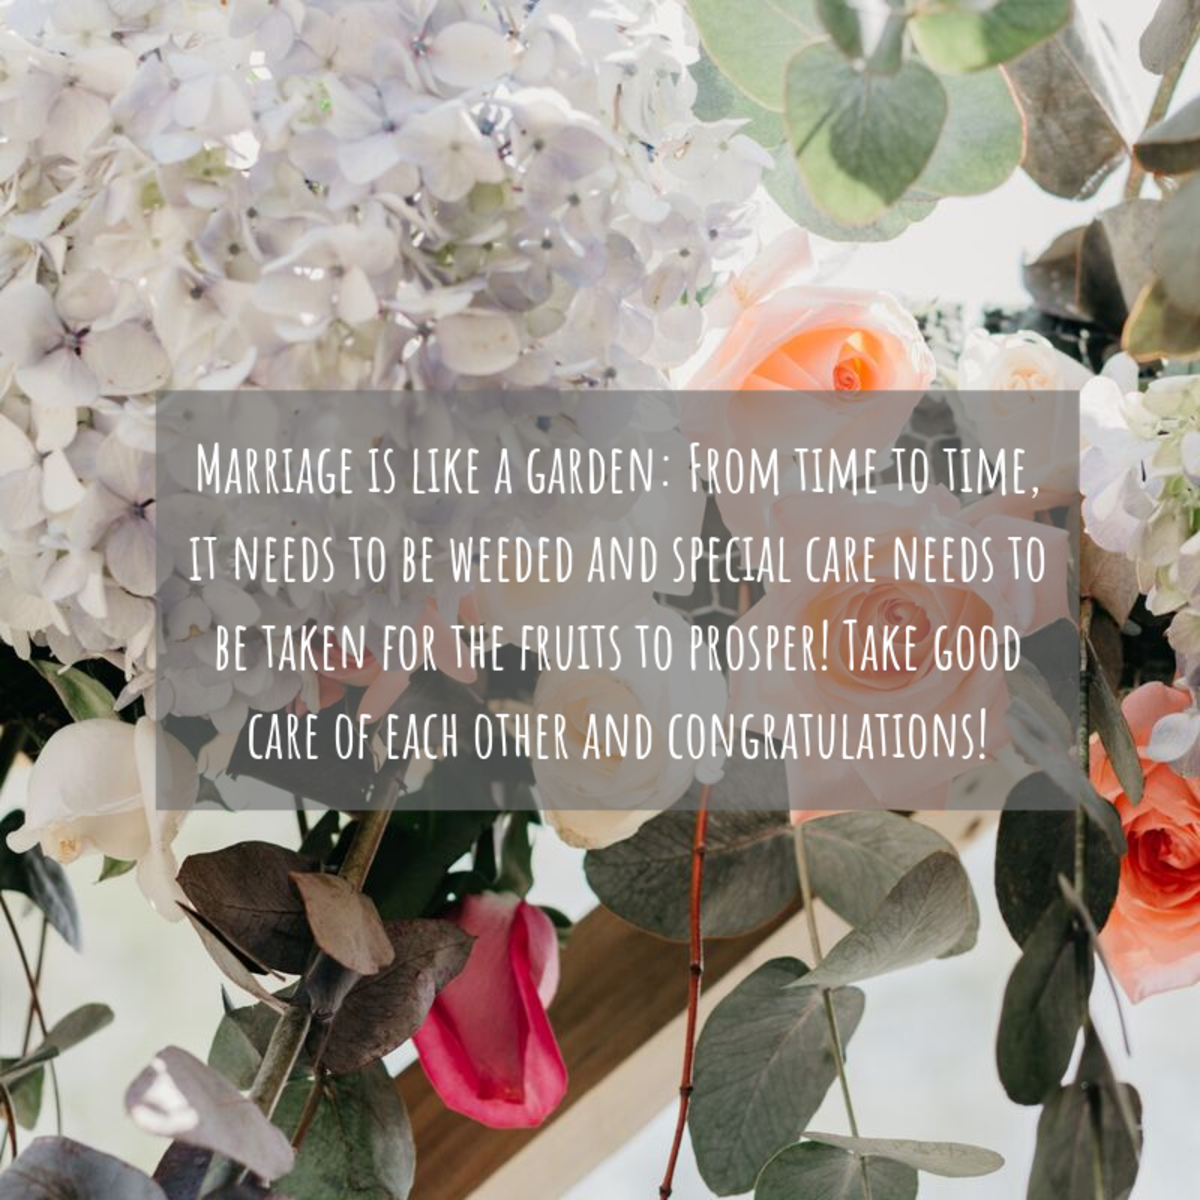 Make your words stand out from the crowd. Write something fun, positive, and affirming for the bride-to-be.